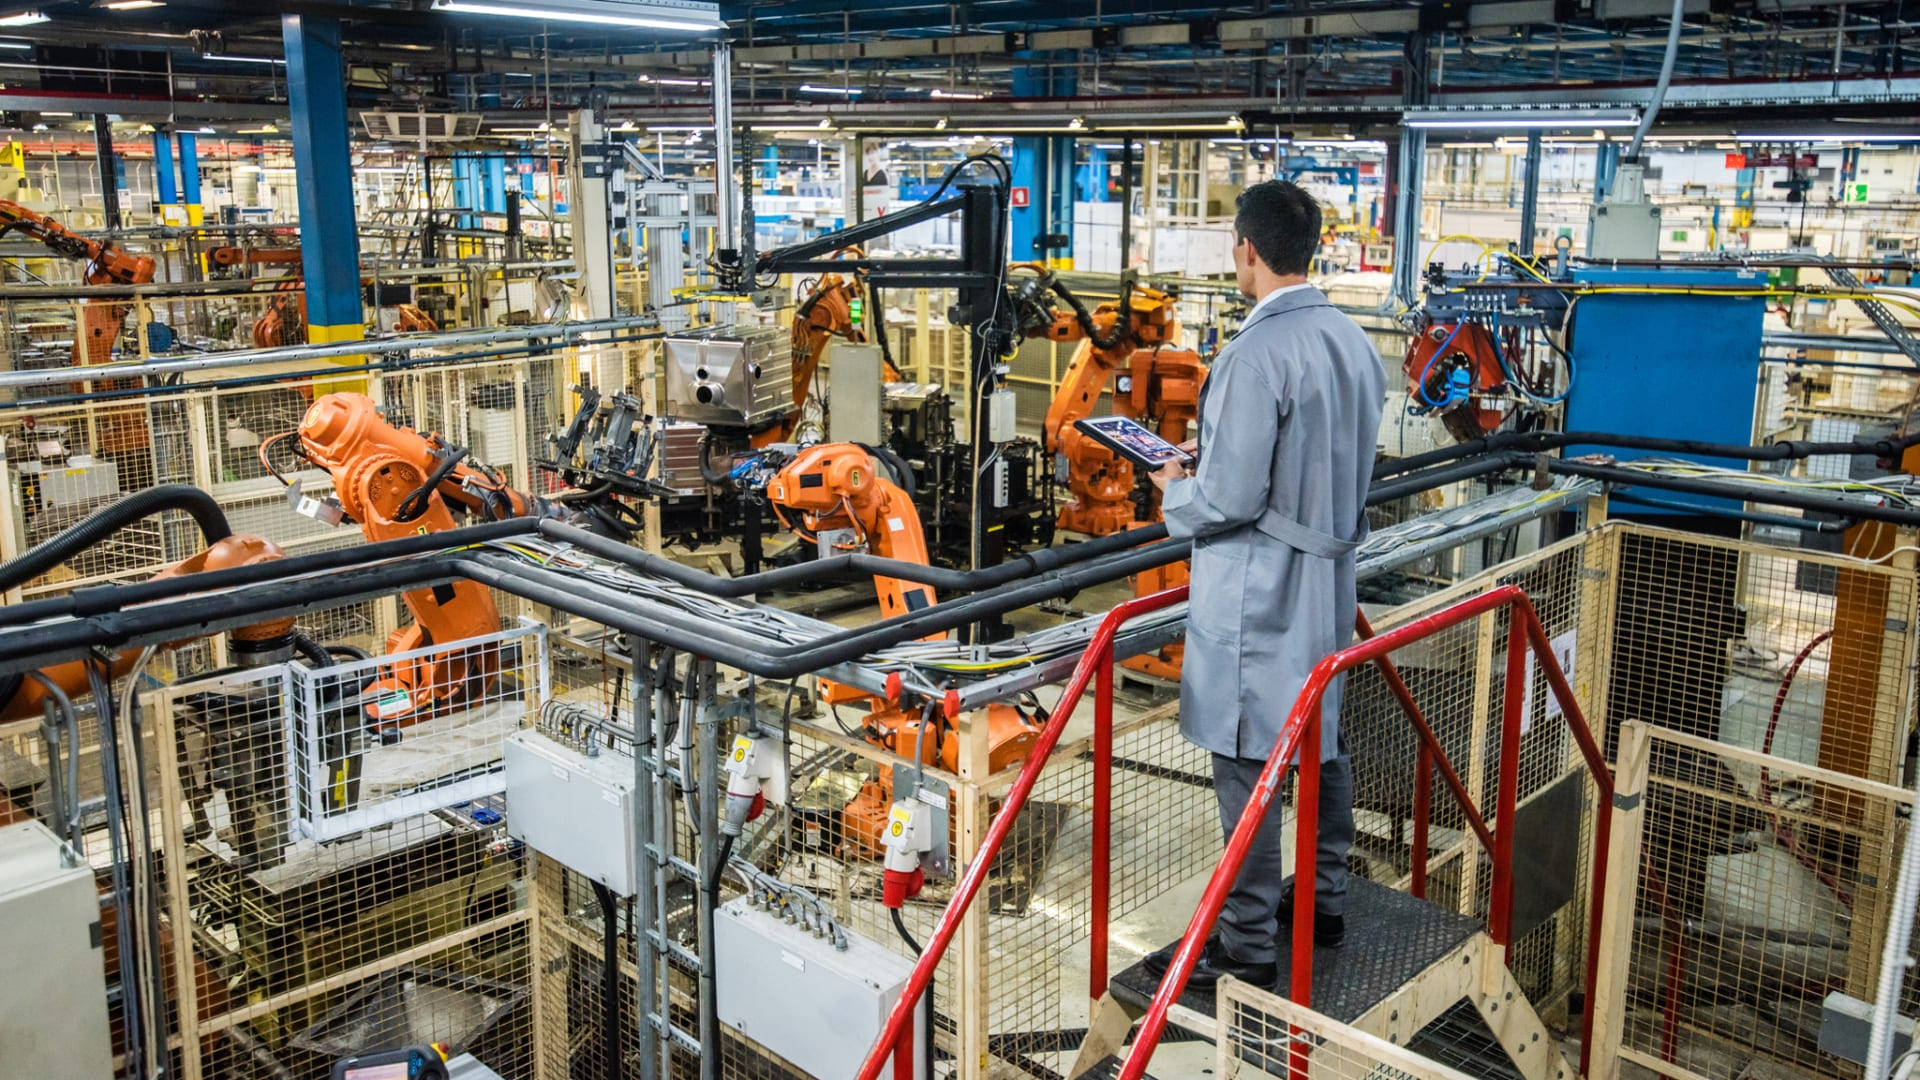 Robotics and Blockchain Top the List of Fastest-Growing Industries